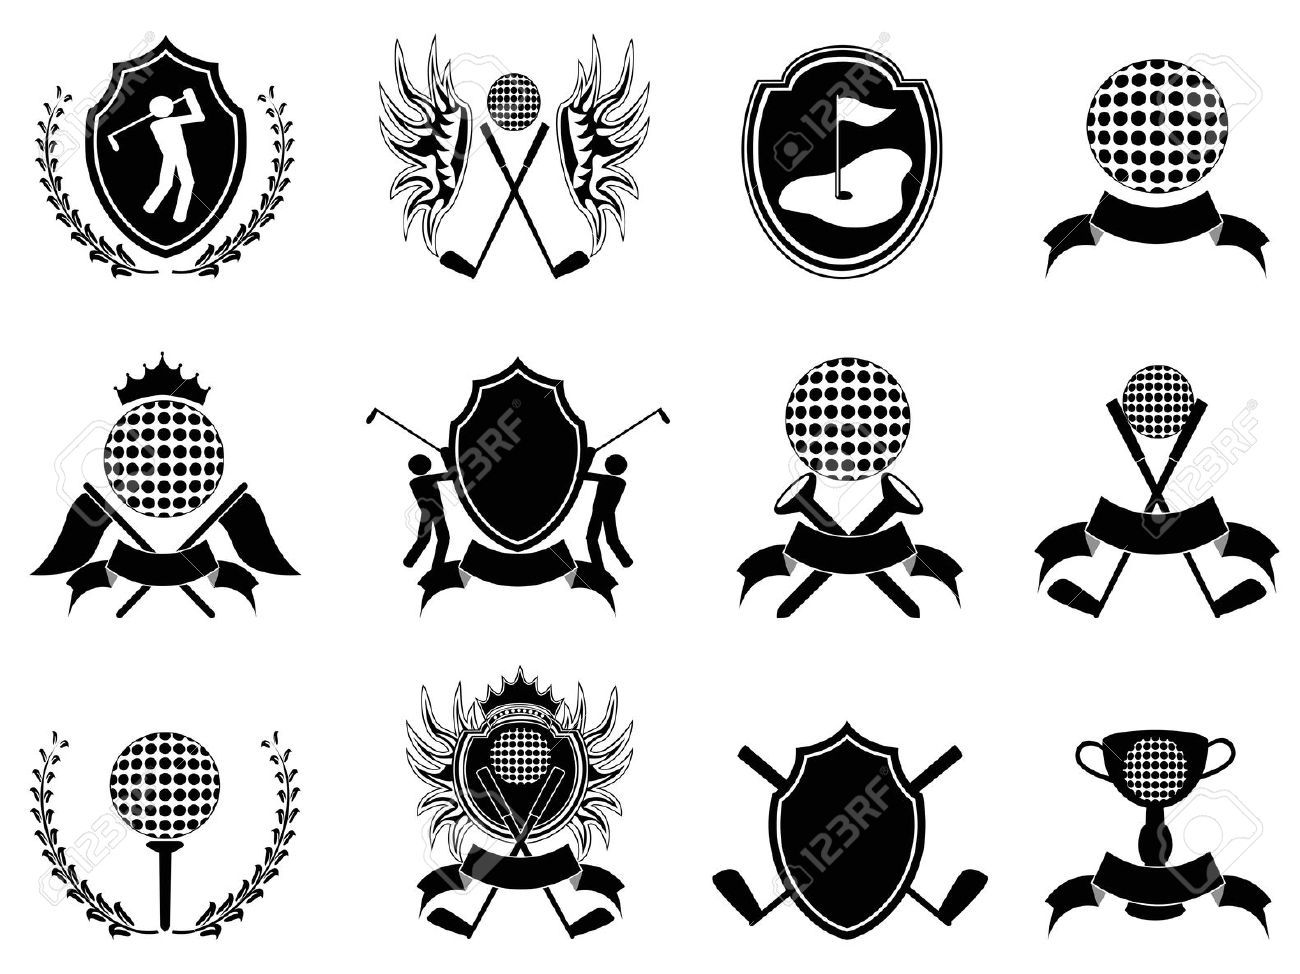 Some Collection Of Black Golf Insignia For Design Royalty